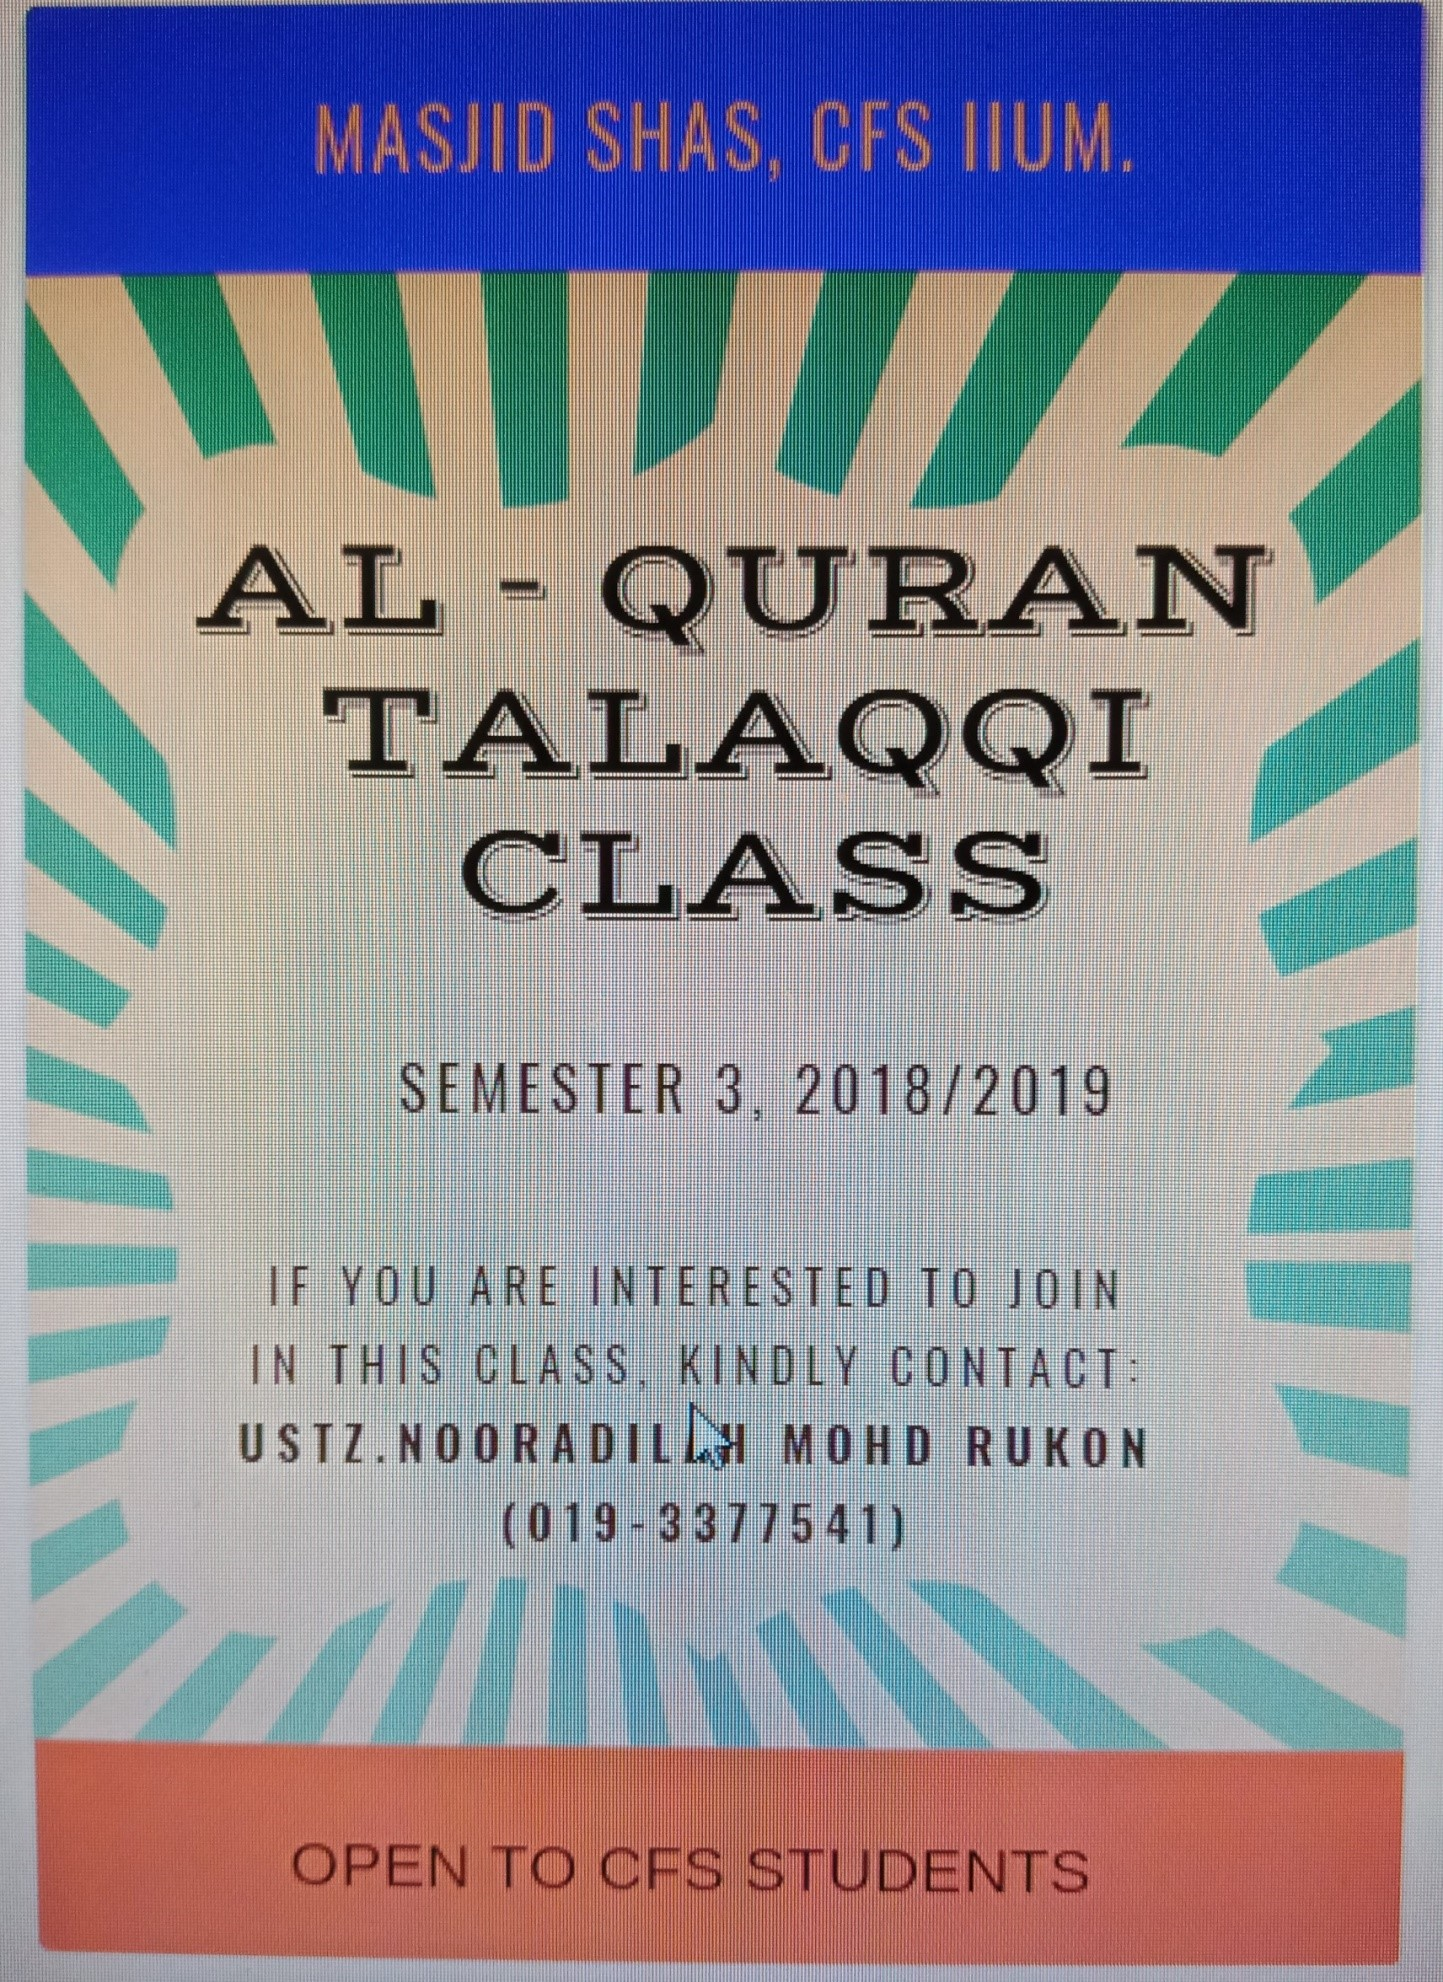 TALAQQI CLASS FOR CFS STUDENTS SEMESTER 3, 2018/2019